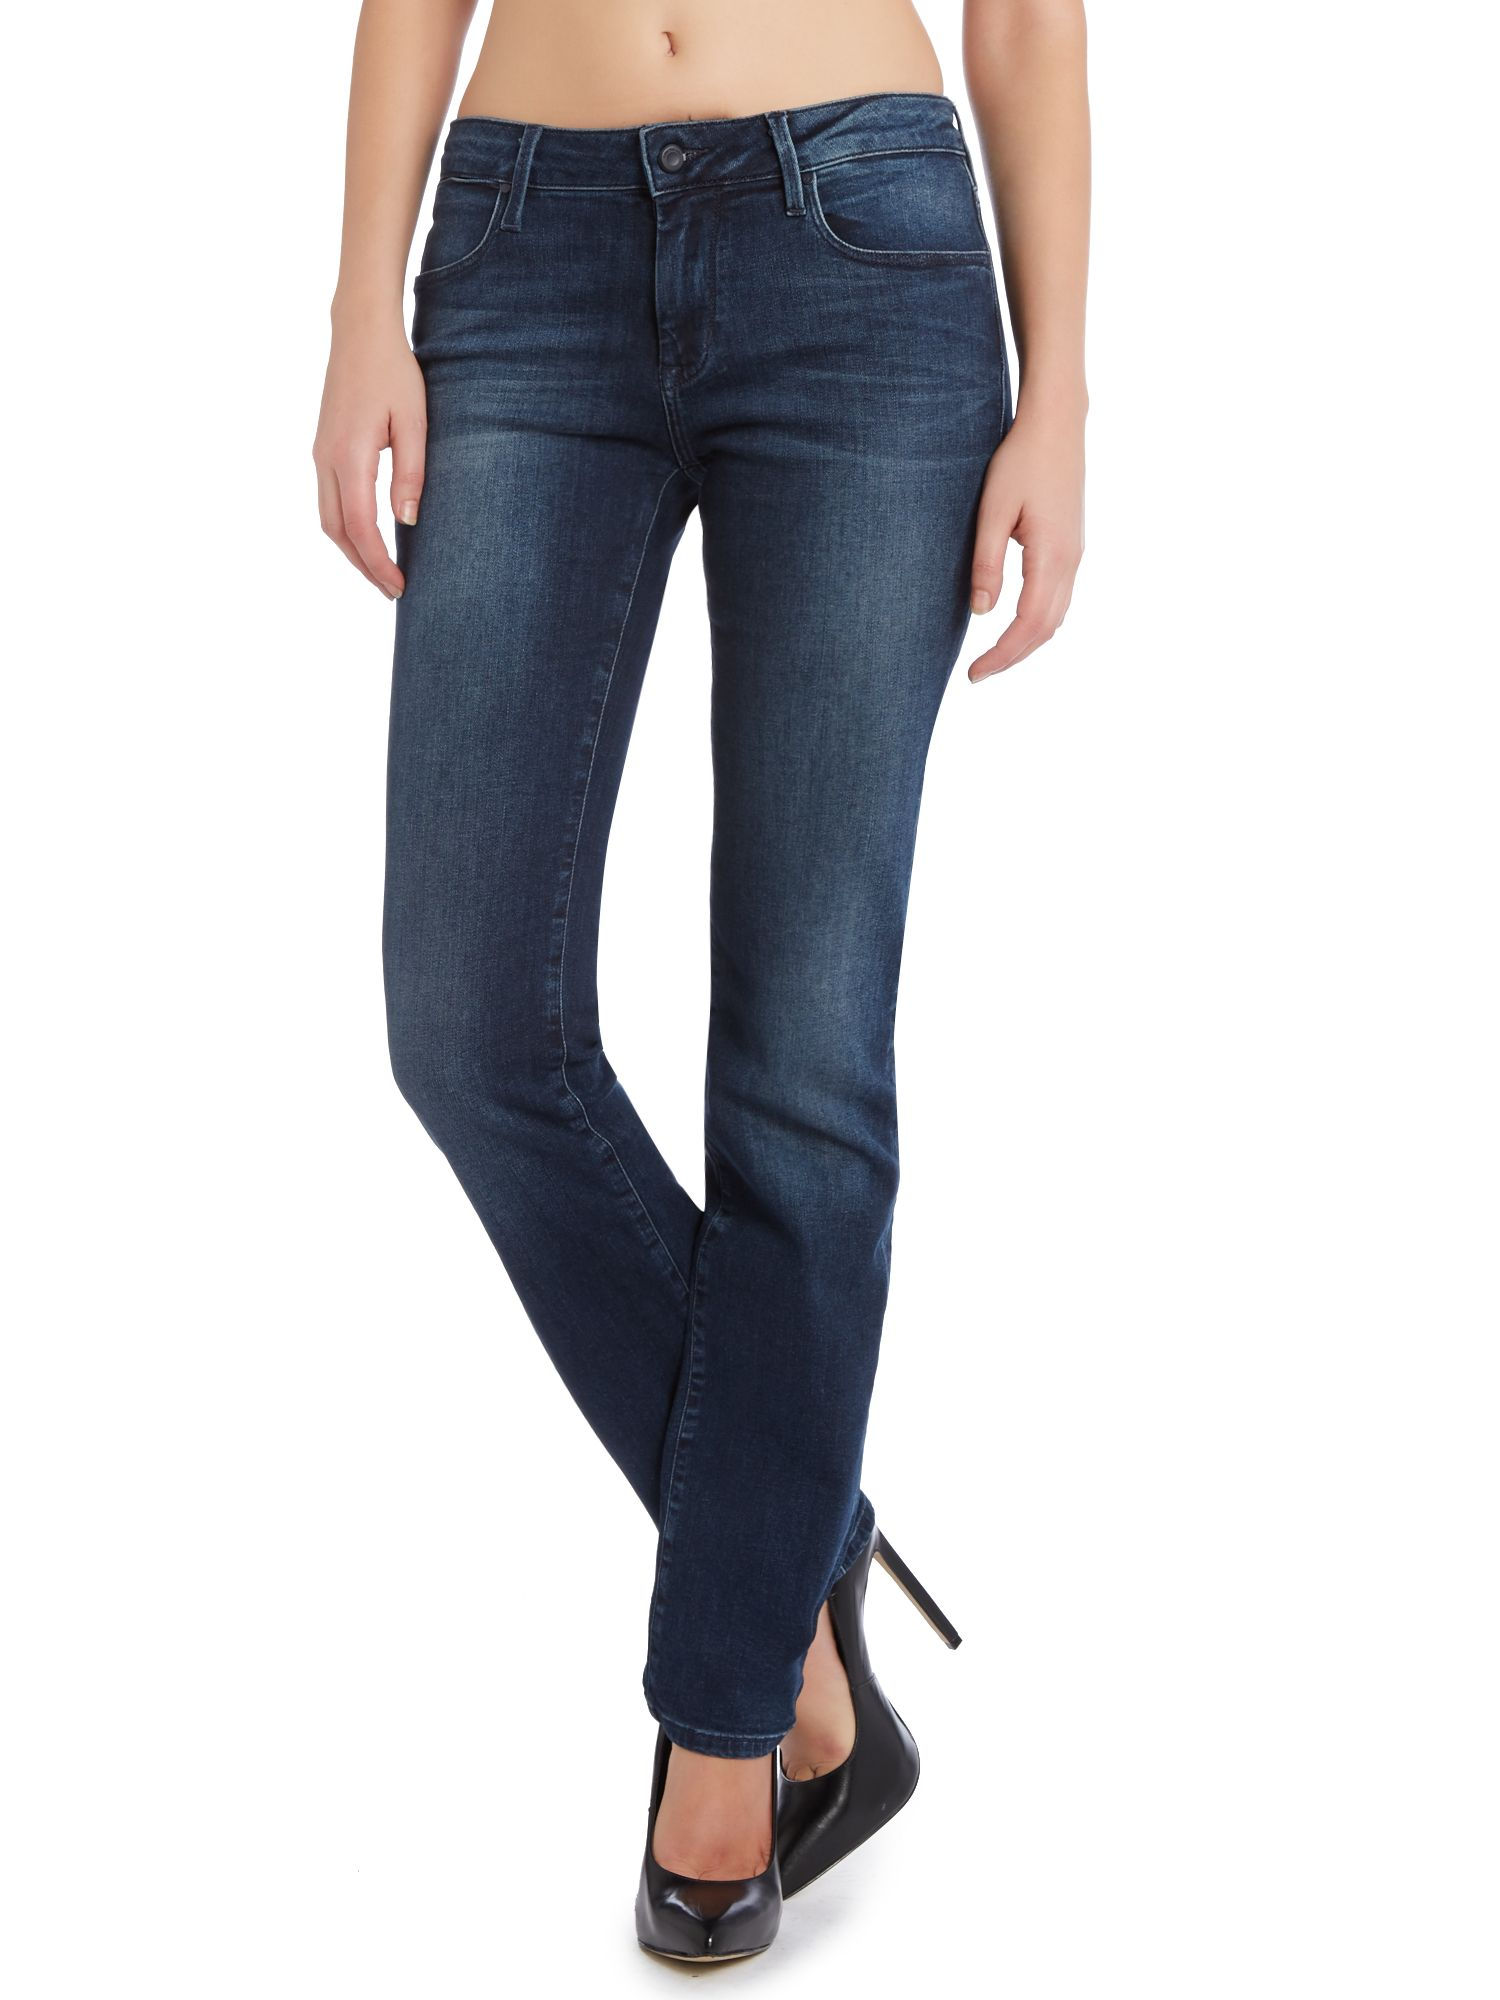 Mid rise straight jean in new core dark